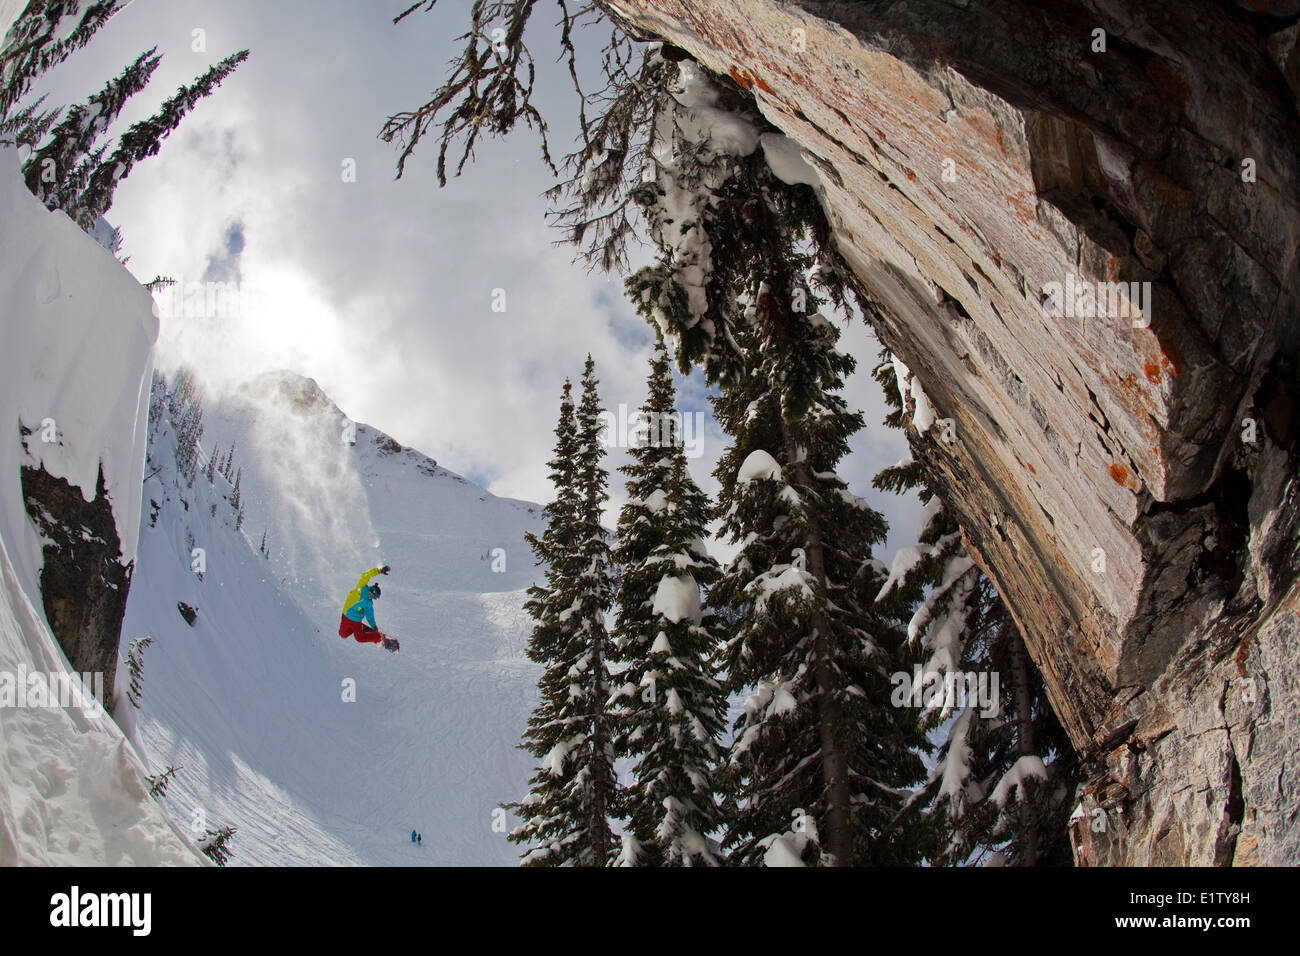 A male snowboarder airs off a big cliff at Revelstoke Mtn Resort, BC - Stock Image